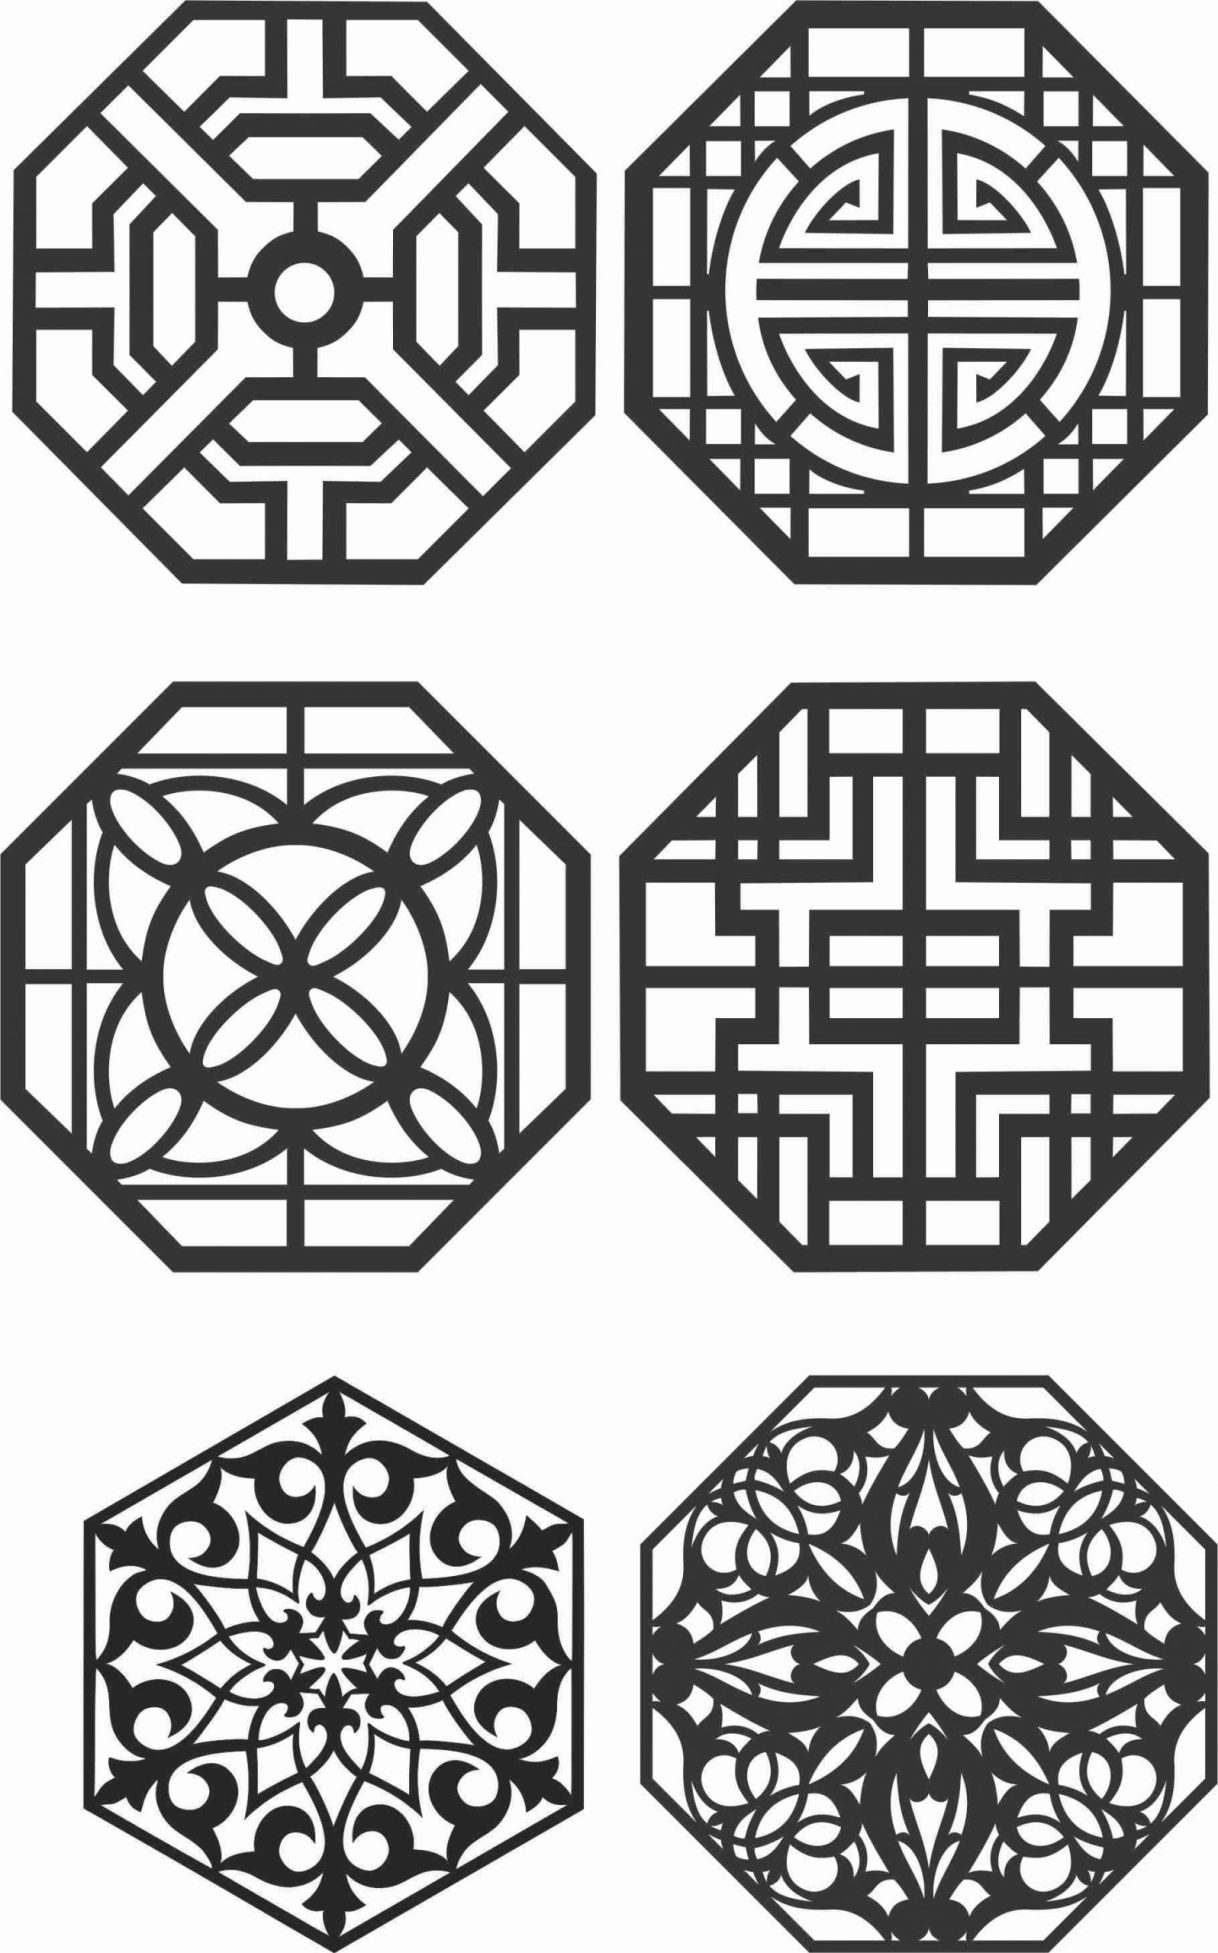 Floral Screen Patterns Design 145 Free DXF File